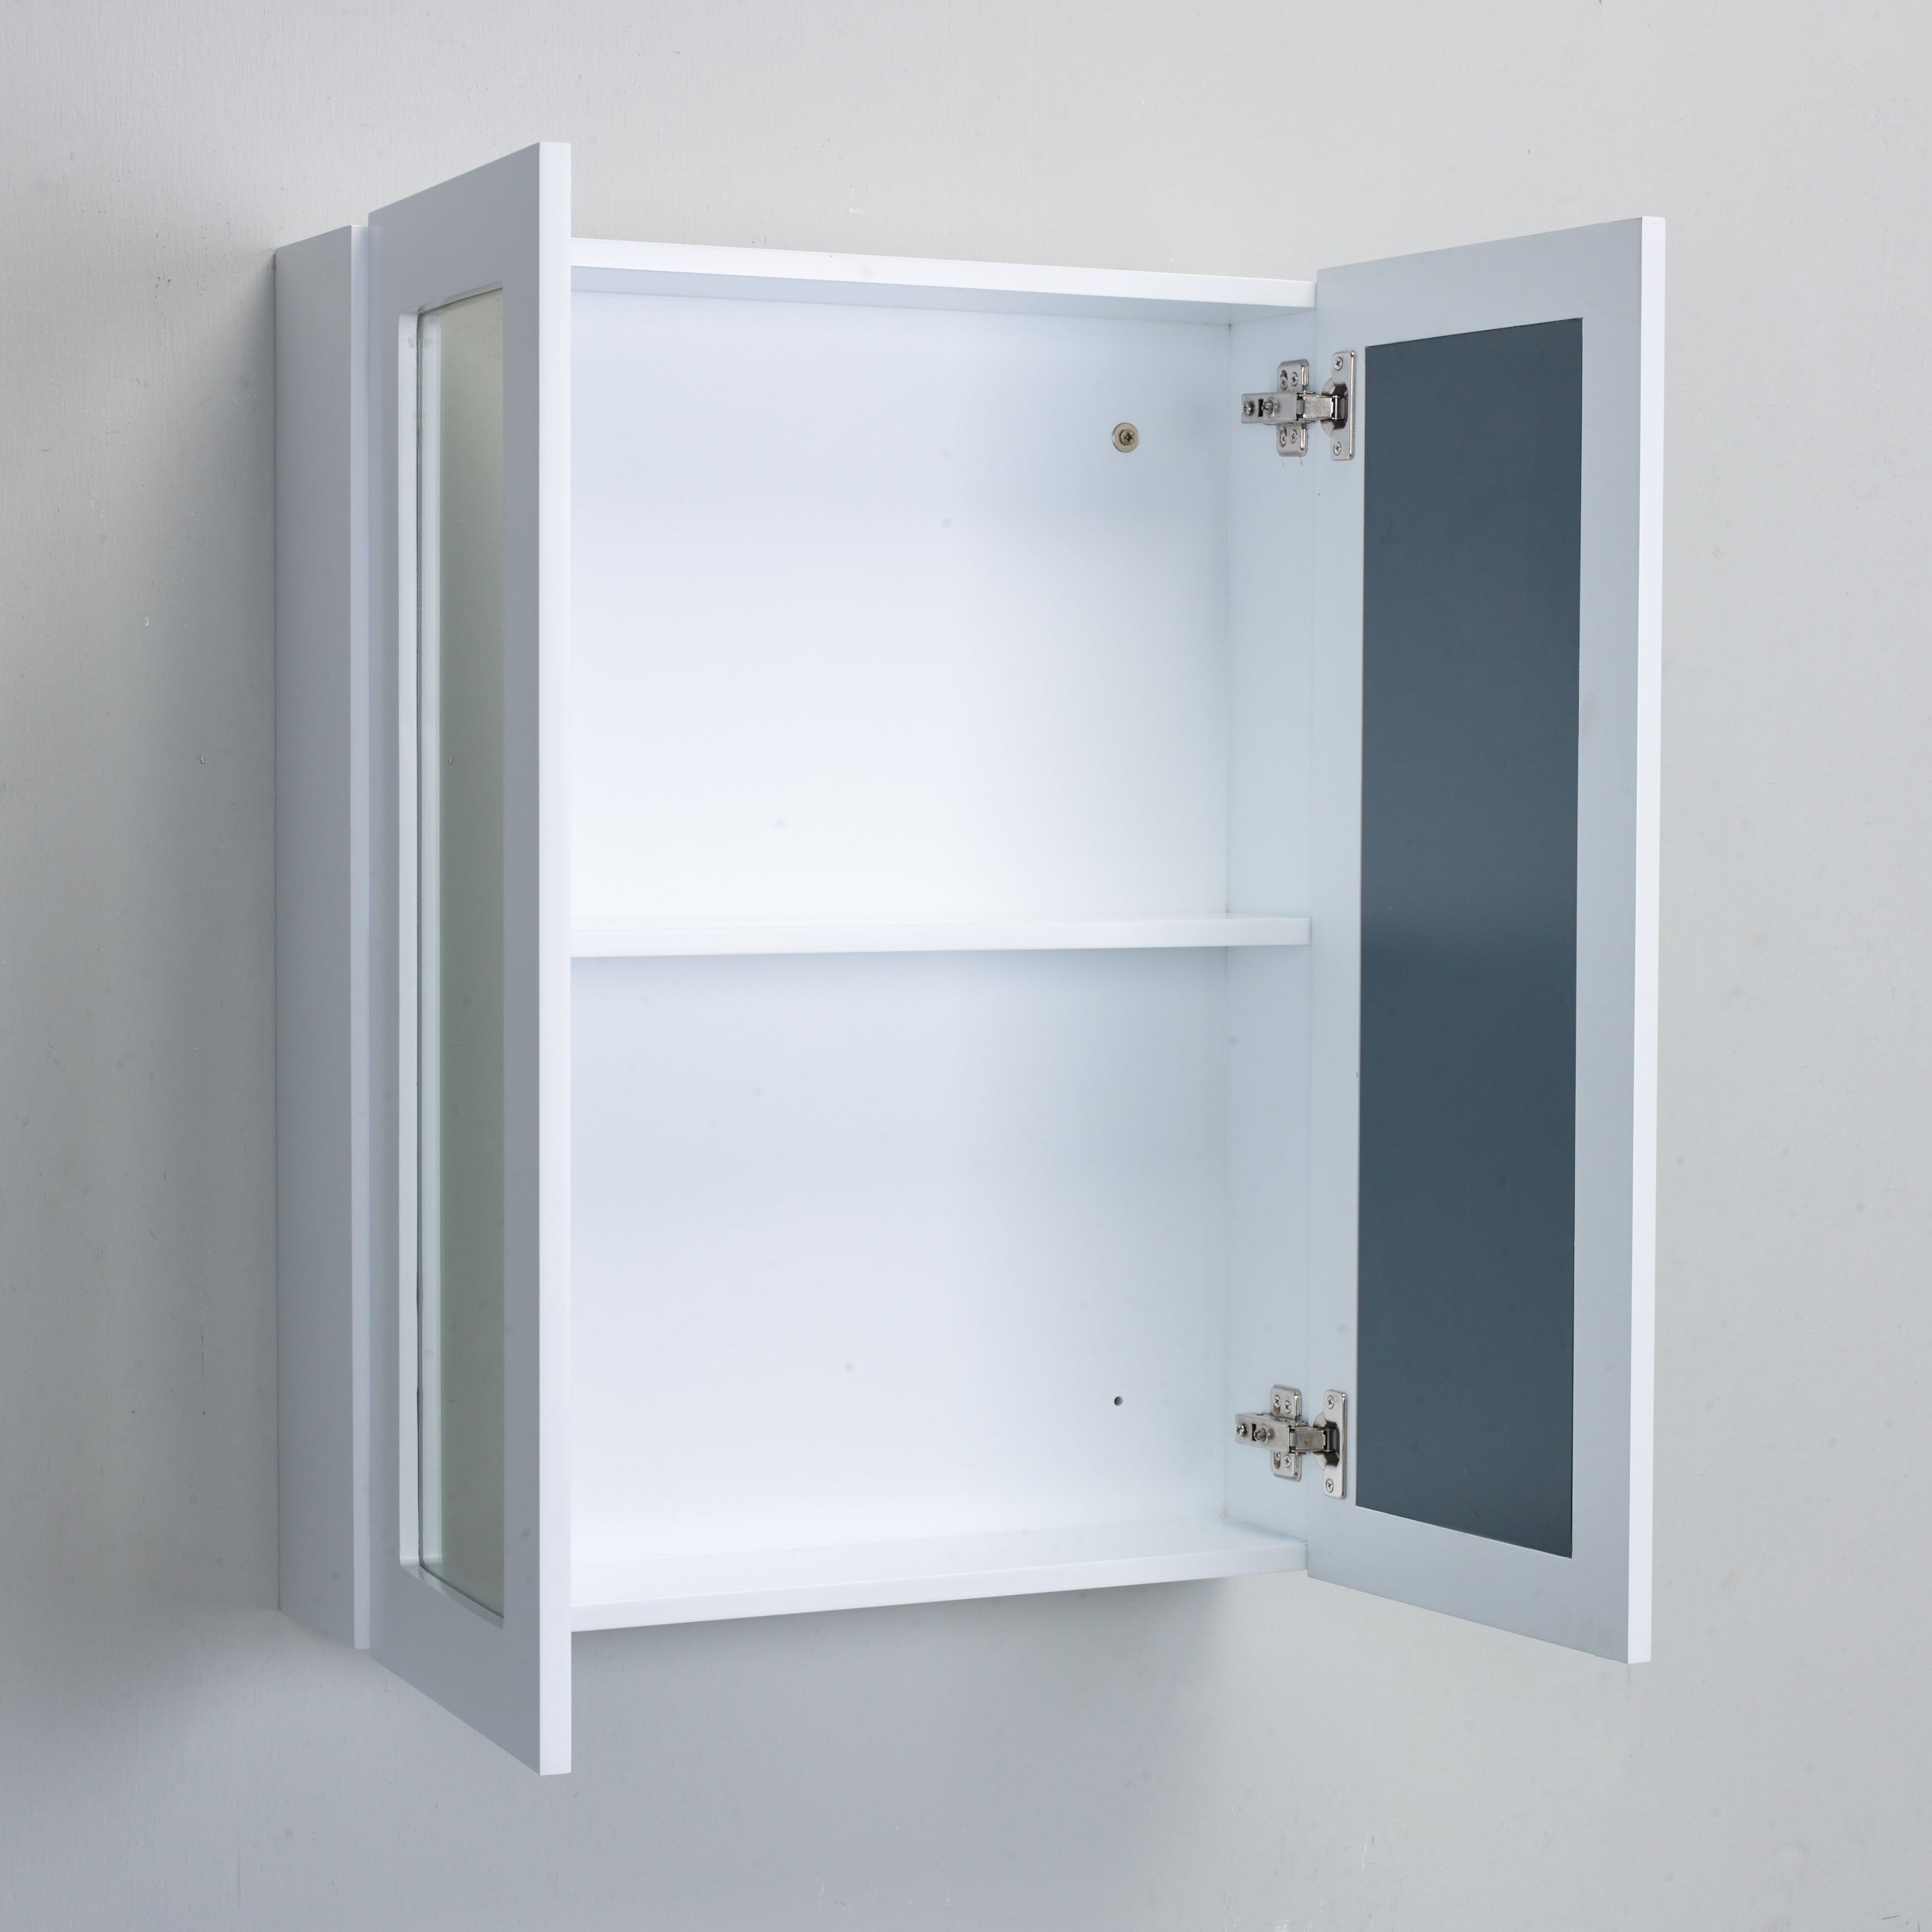 door bathroom westwood cupboard itm mount sentinel storage triple white mirror cabinet wall